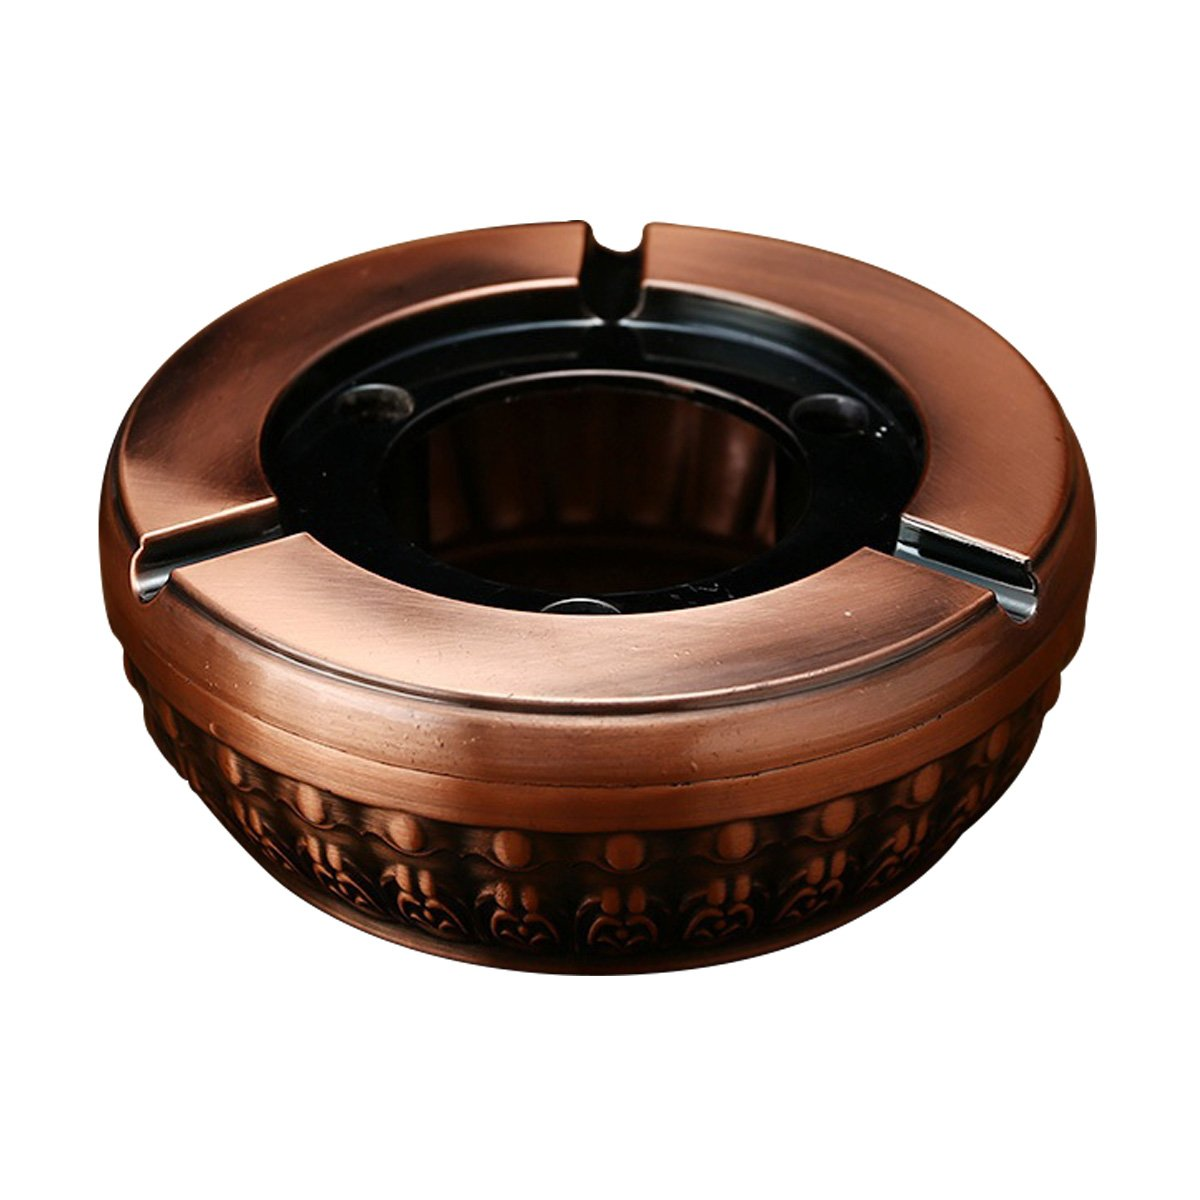 Feximzl Retro Ashtray with Embossed Element for Outdoor & Indoor Use,Home/Office – Smoking Cigarette Holder (Rose Gold)